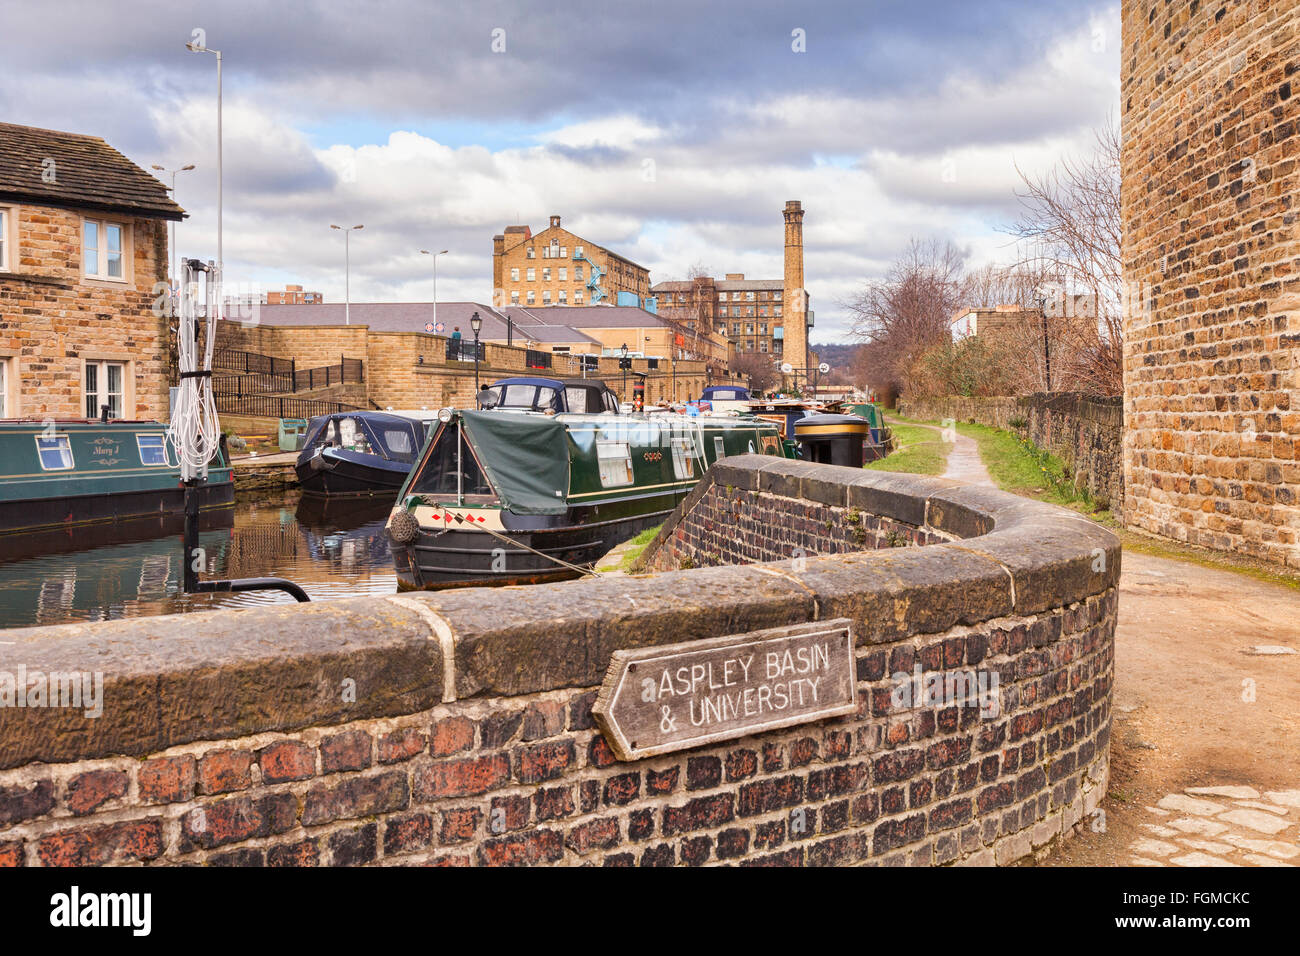 Huddersfield Broad Canal, Huddersfield, West Yorkshire, England, UK - Stock Image